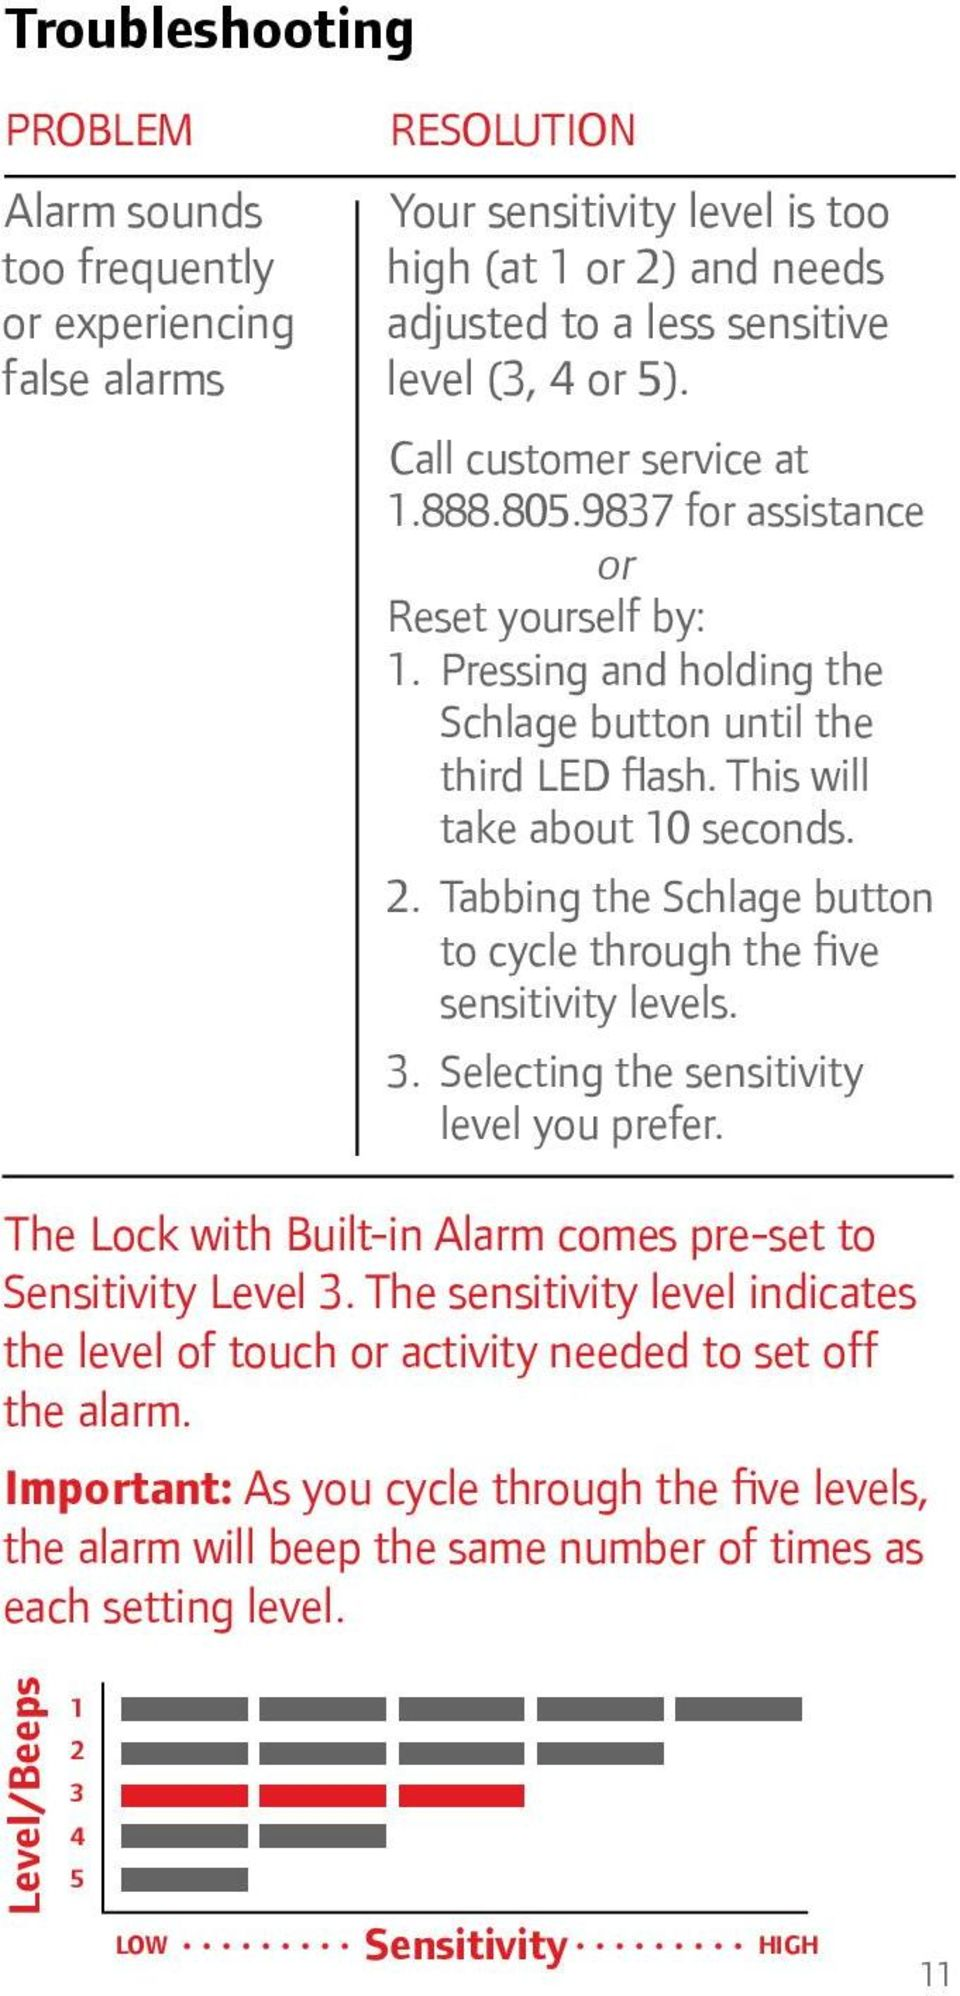 Tabbing the Schlage button to cycle through the five sensitivity levels. 3. Selecting the sensitivity level you prefer. The Lock with Built-in Alarm comes pre-set to Sensitivity Level 3.